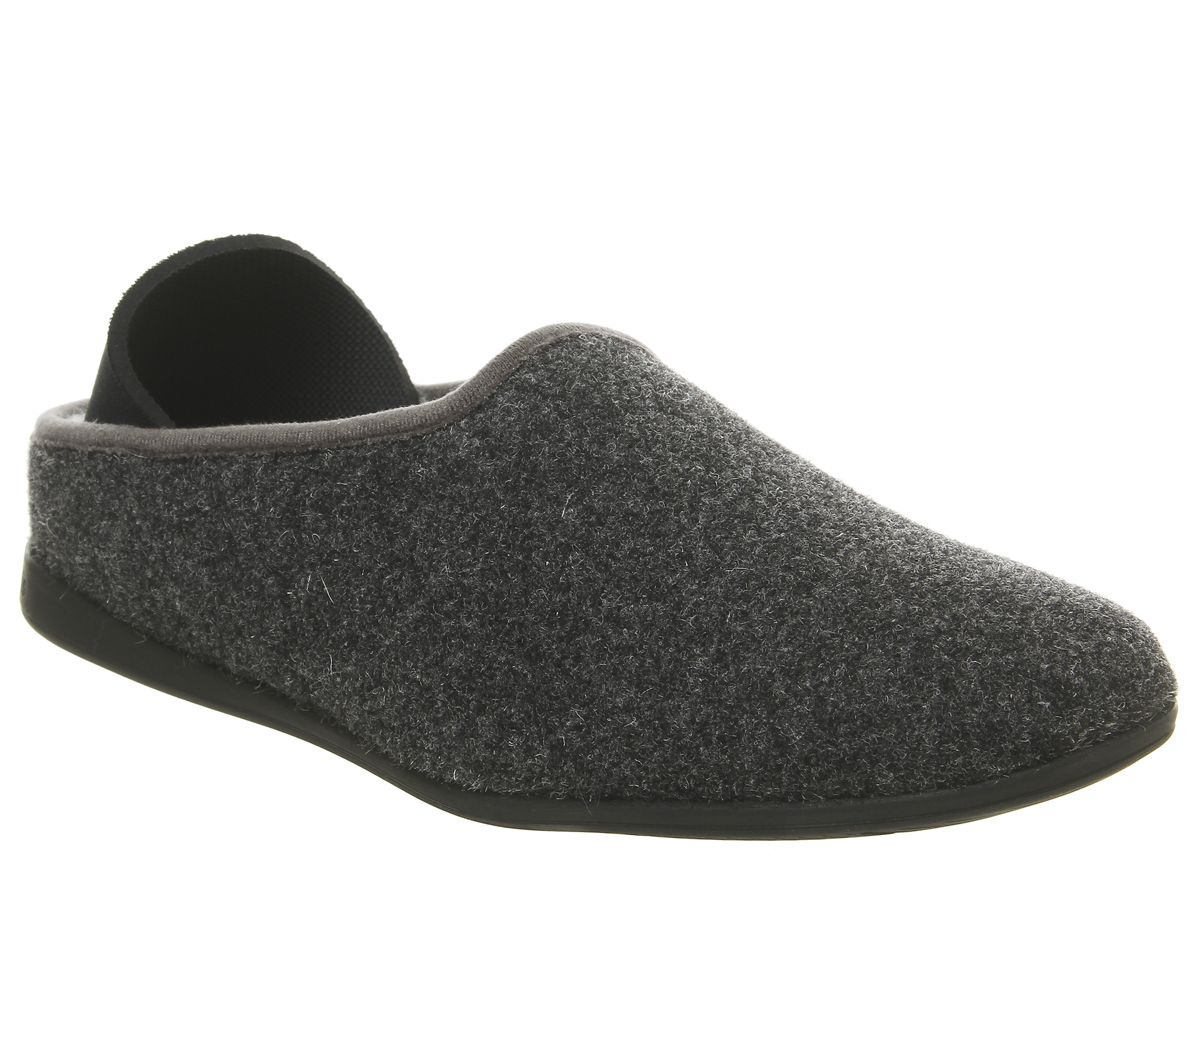 2603786d4b0 Mahabis Mahabis Classic Slippers Larvik Dark Grey Black Sole - Slippers